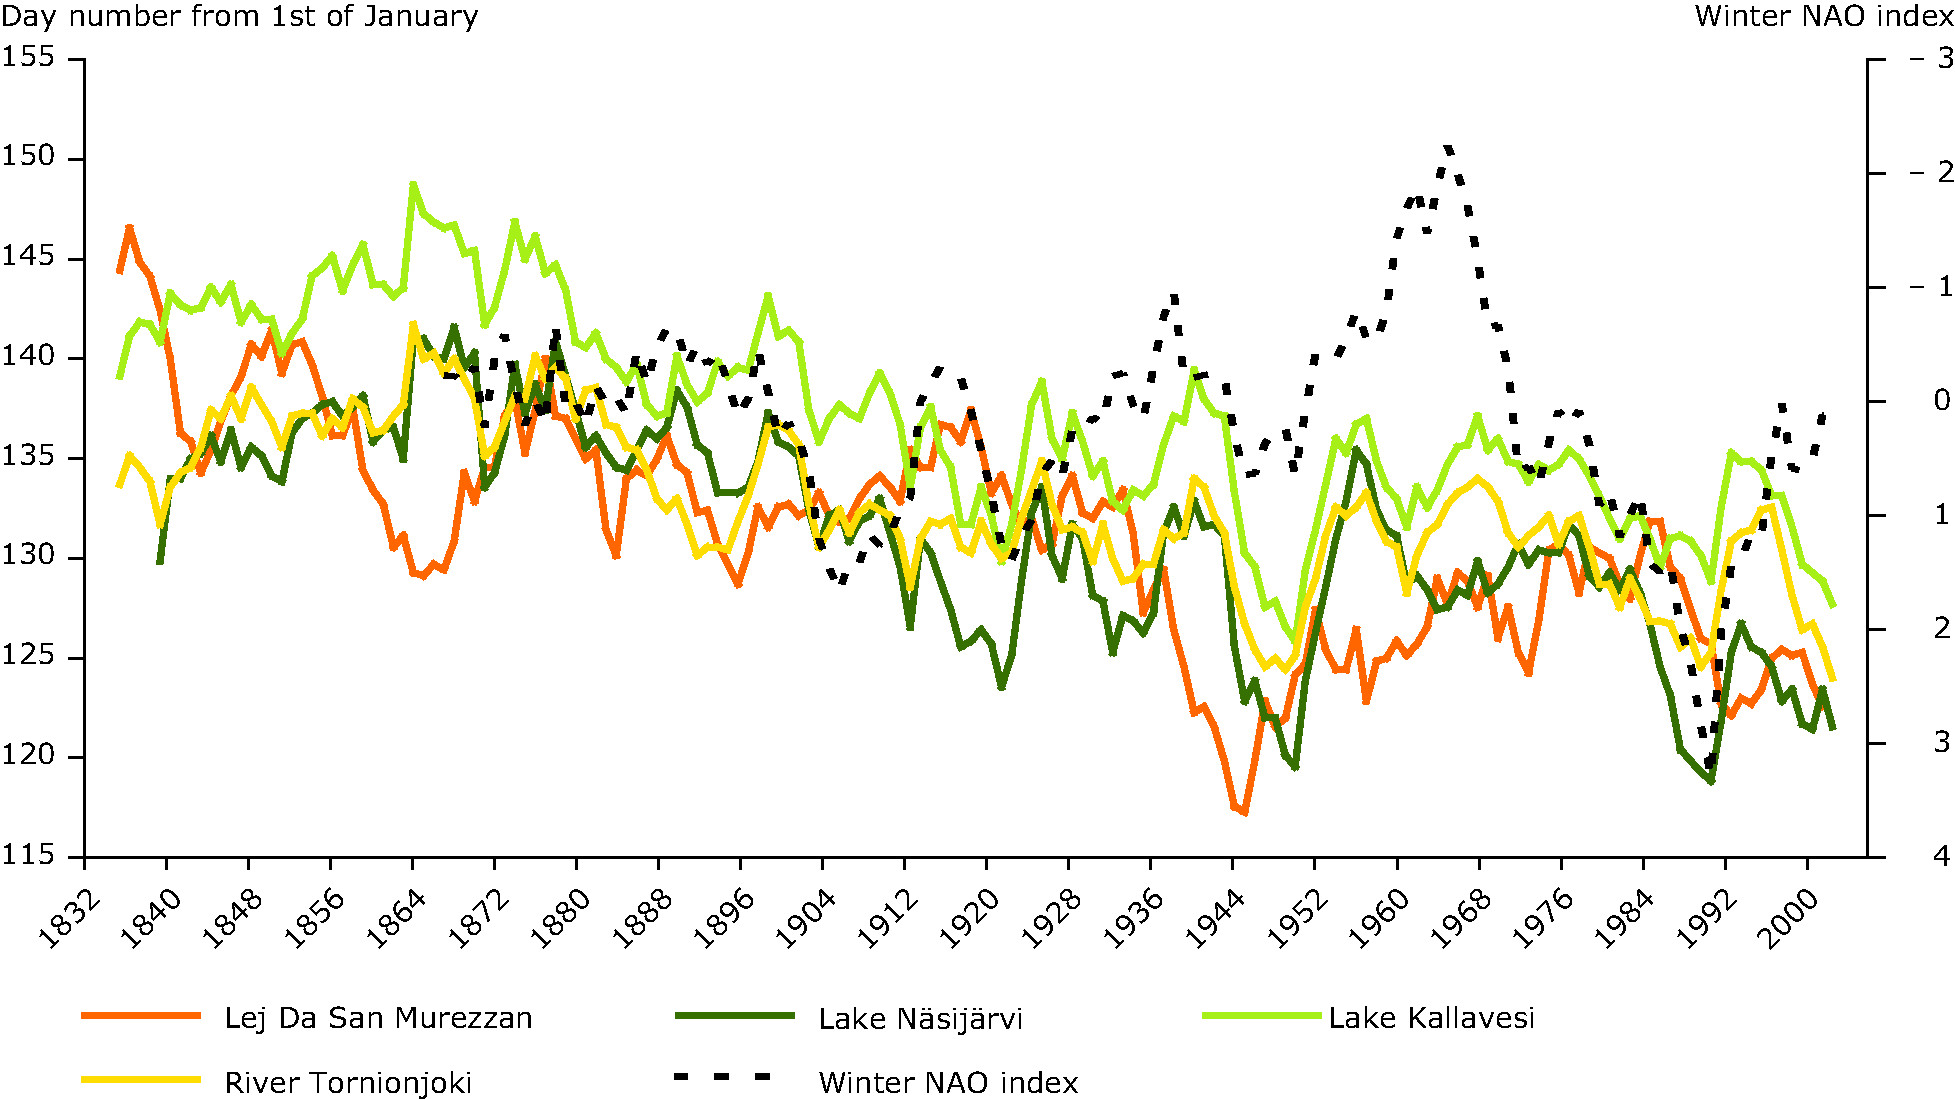 Ice break-up dates from selected European lakes and rivers (1835-2006) and the North Atlantic Oscillation (NAO) index for winter 1864-2006